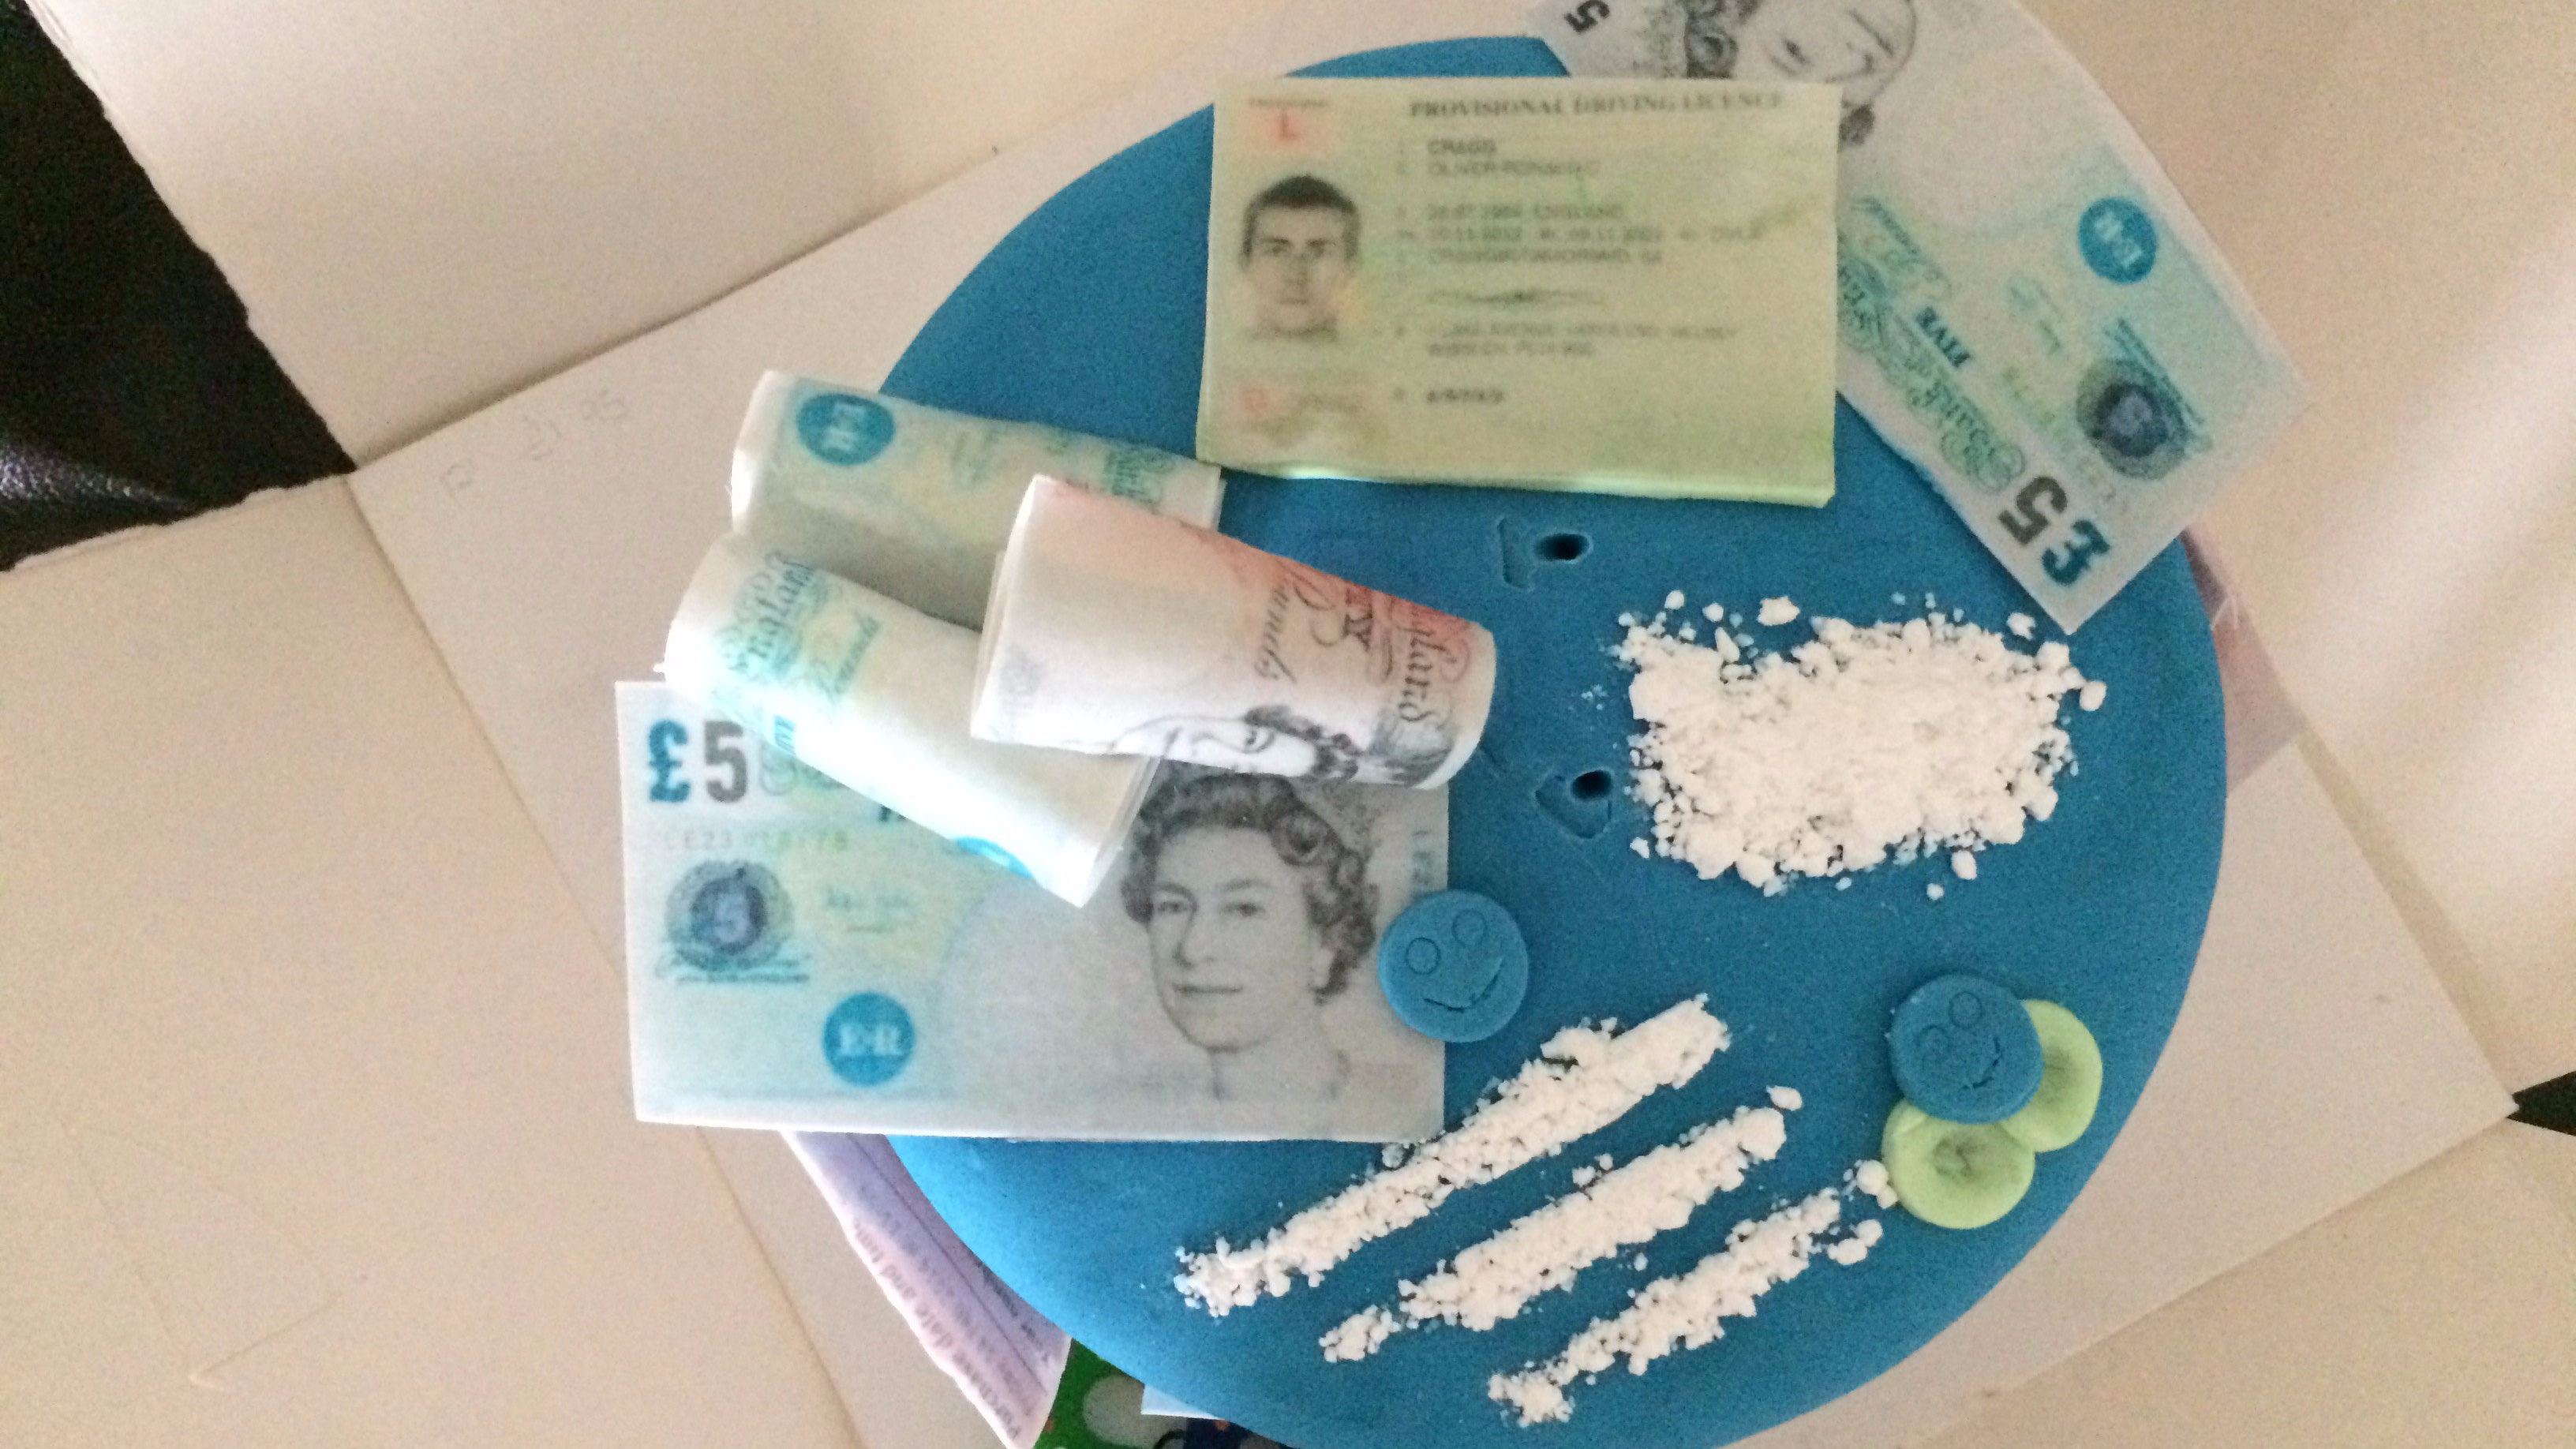 Someone Made A Cocaine And Ecstasy-Themed Birthday Cake